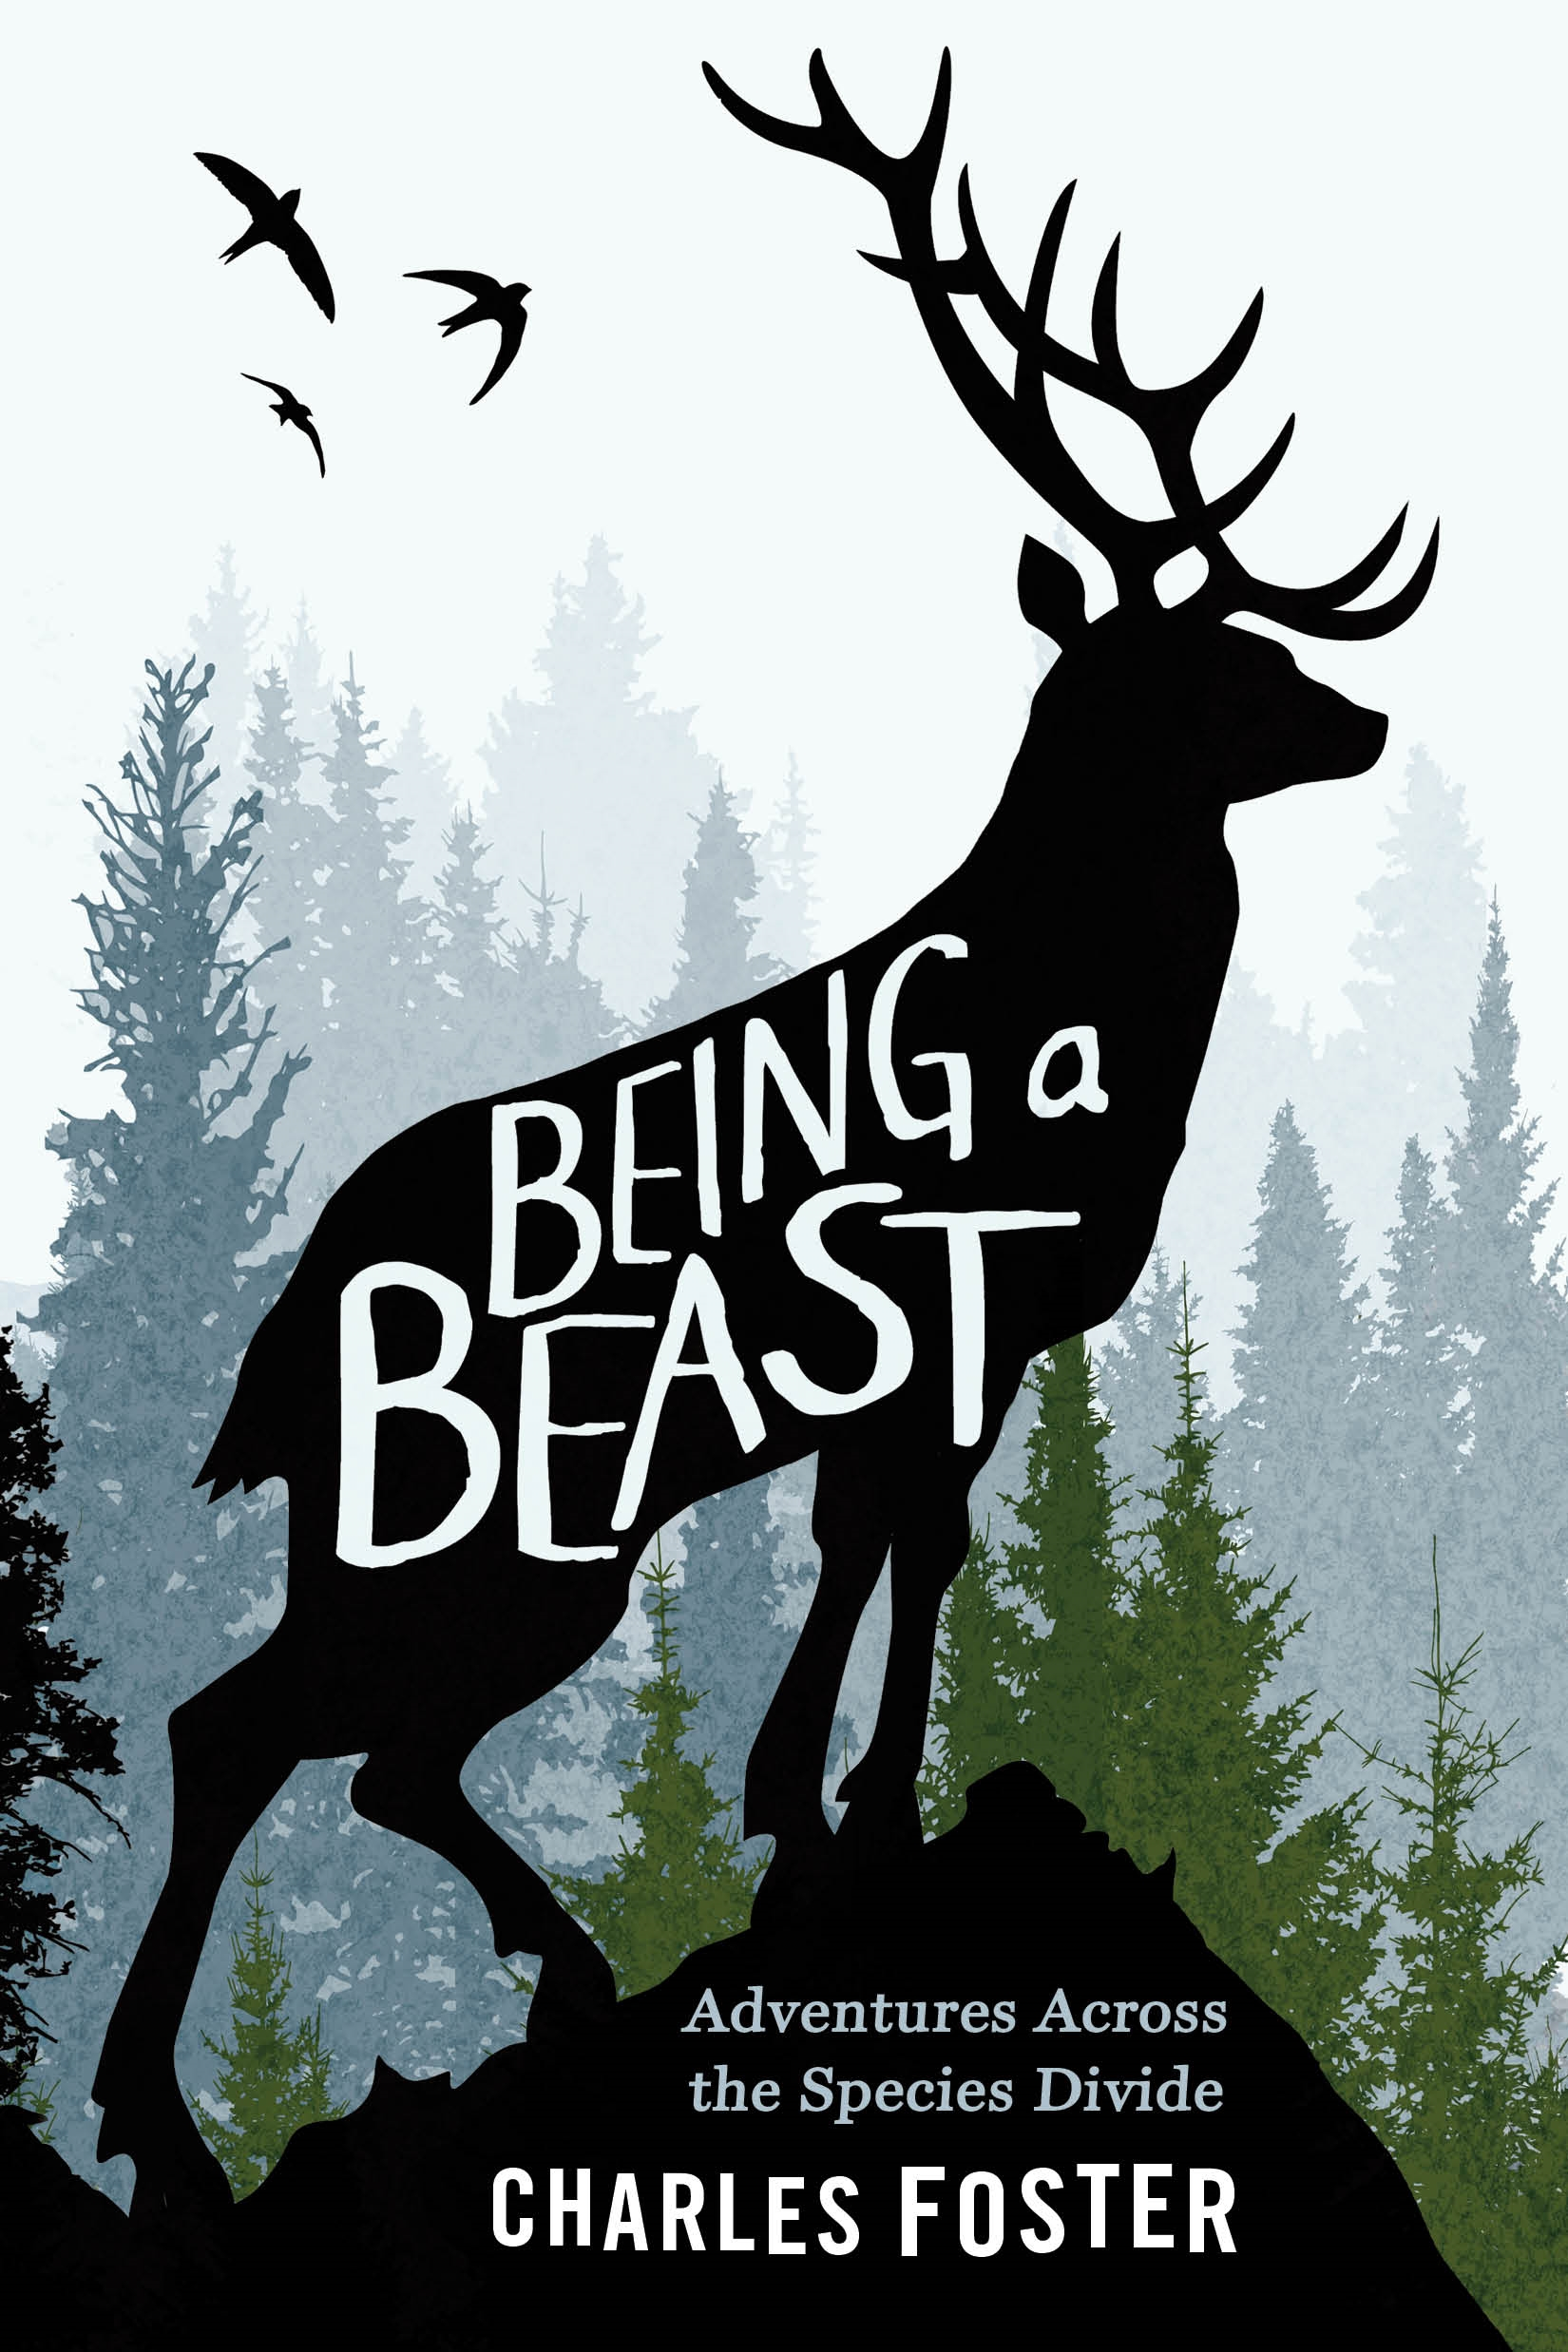 Being a Beast Adventures Across the Species Divide